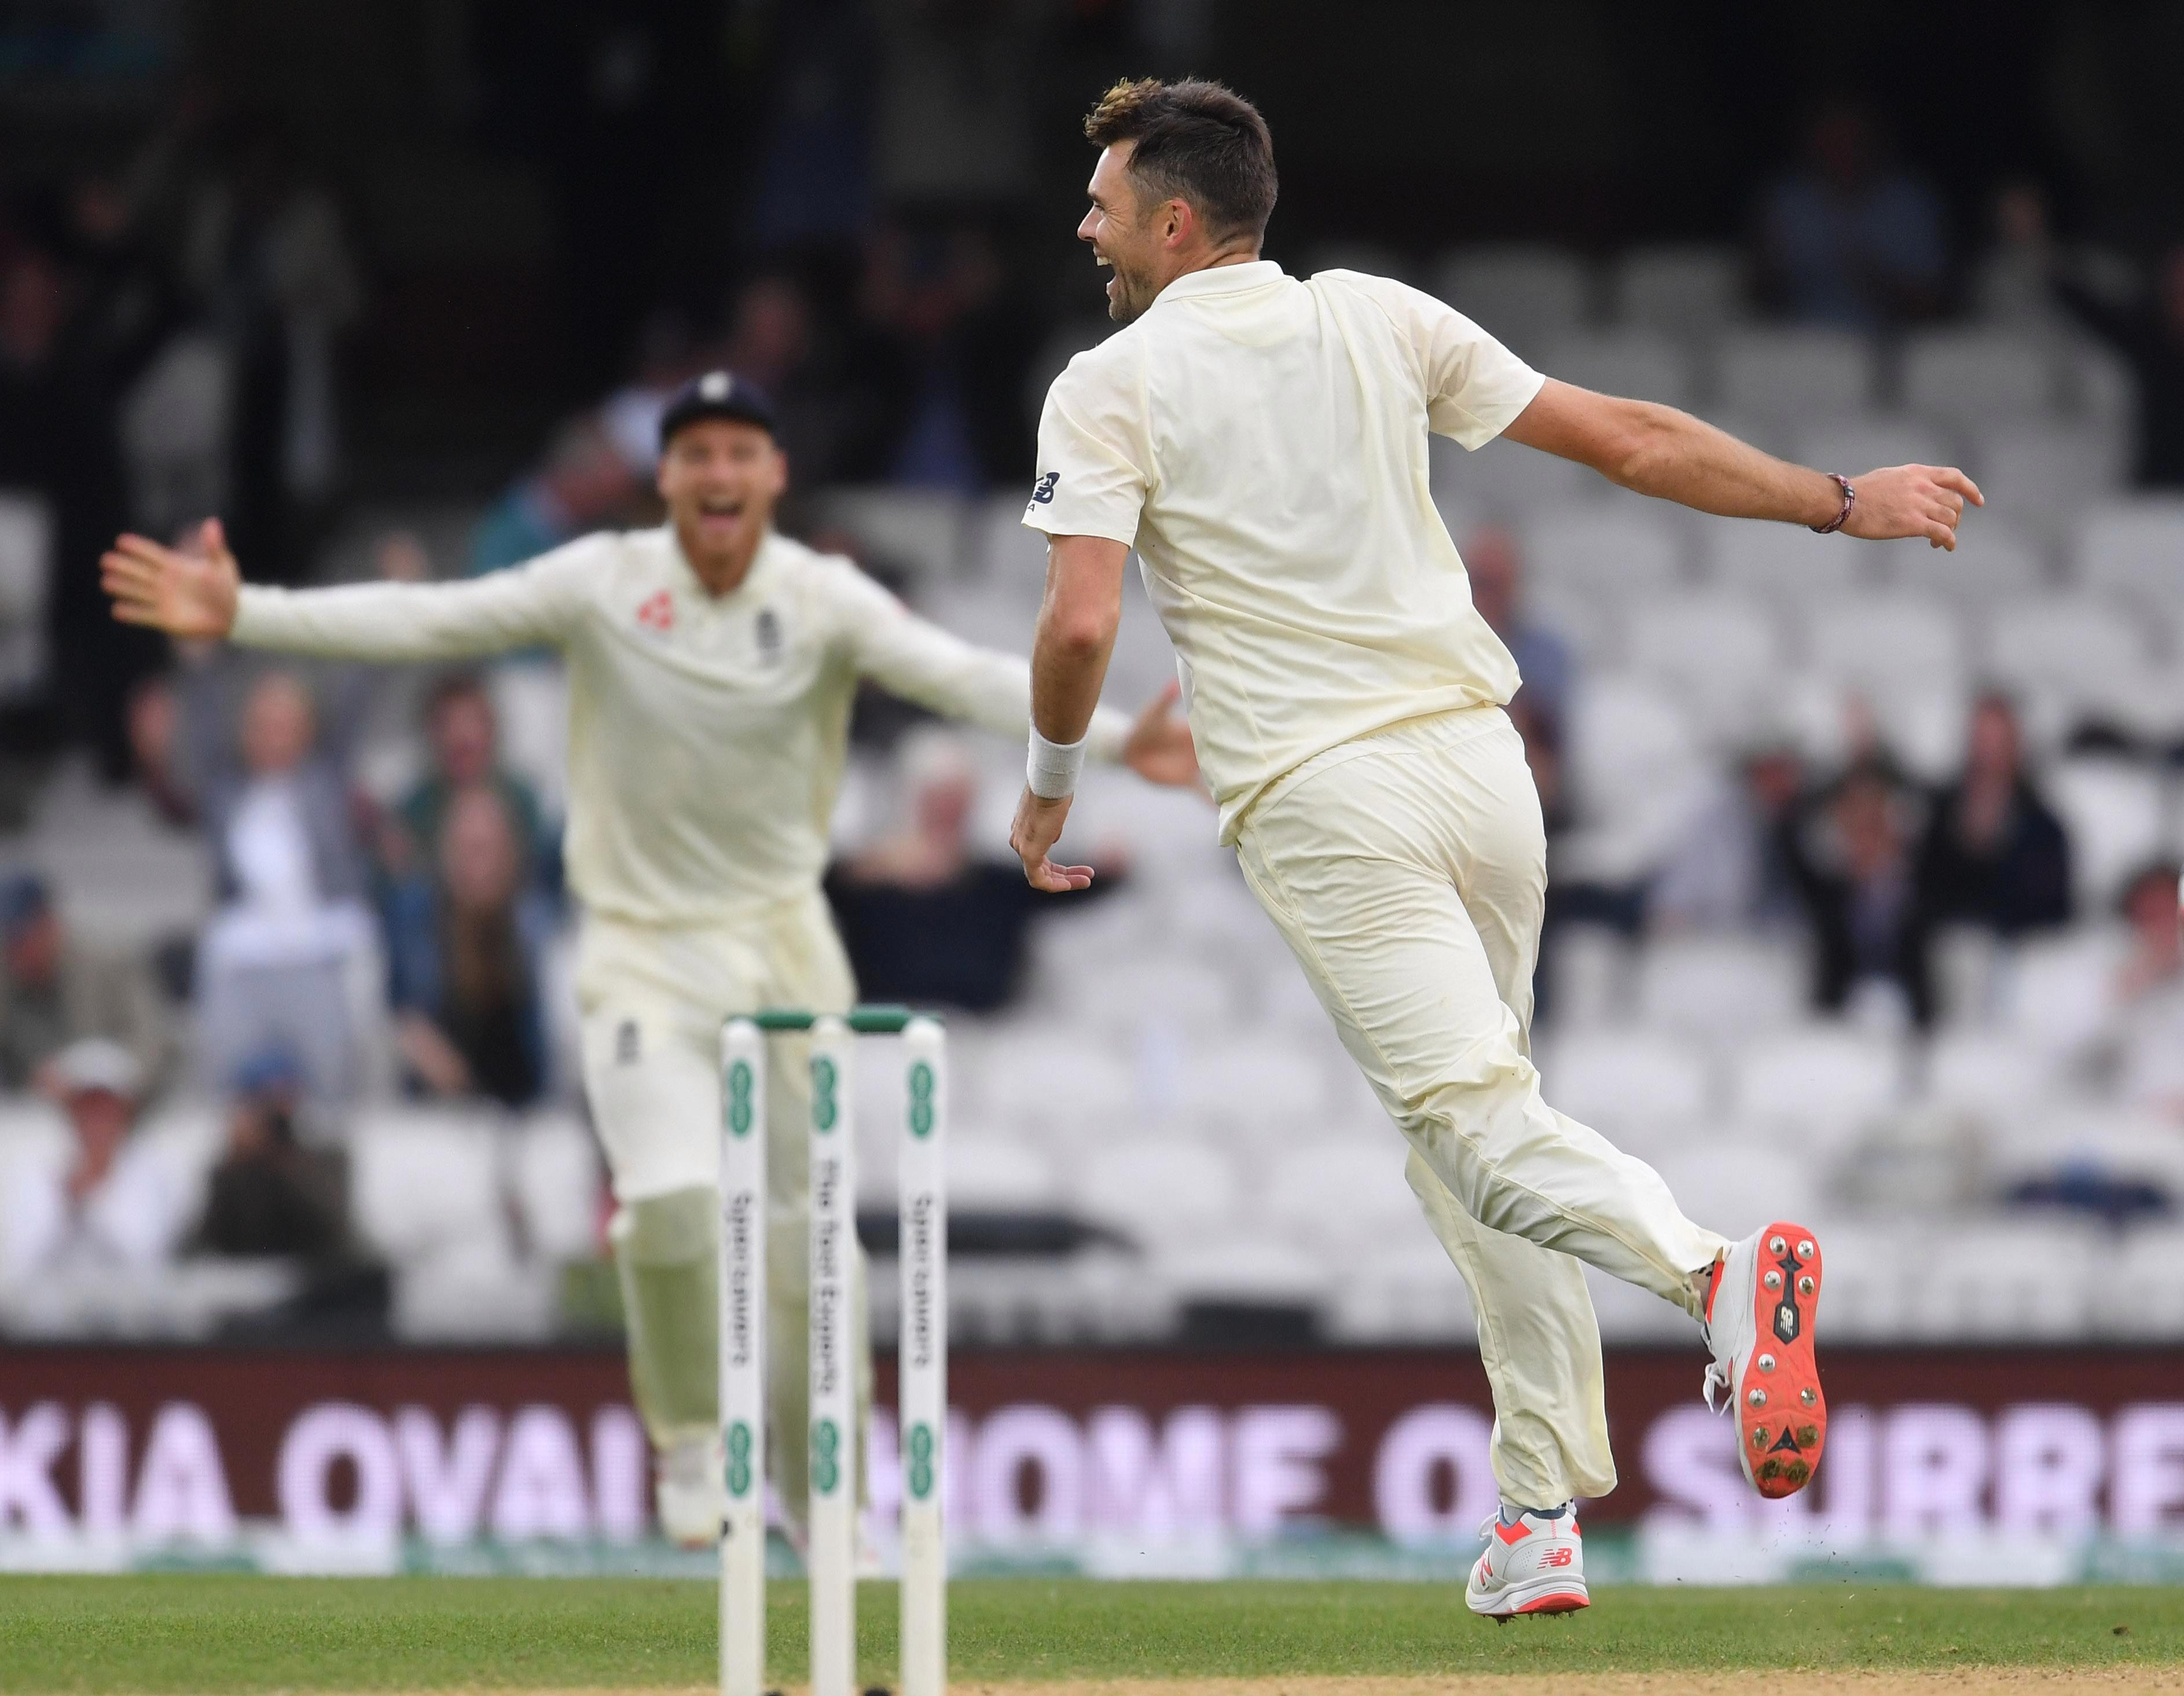 Jimmy Anderson made history as England won the series against India